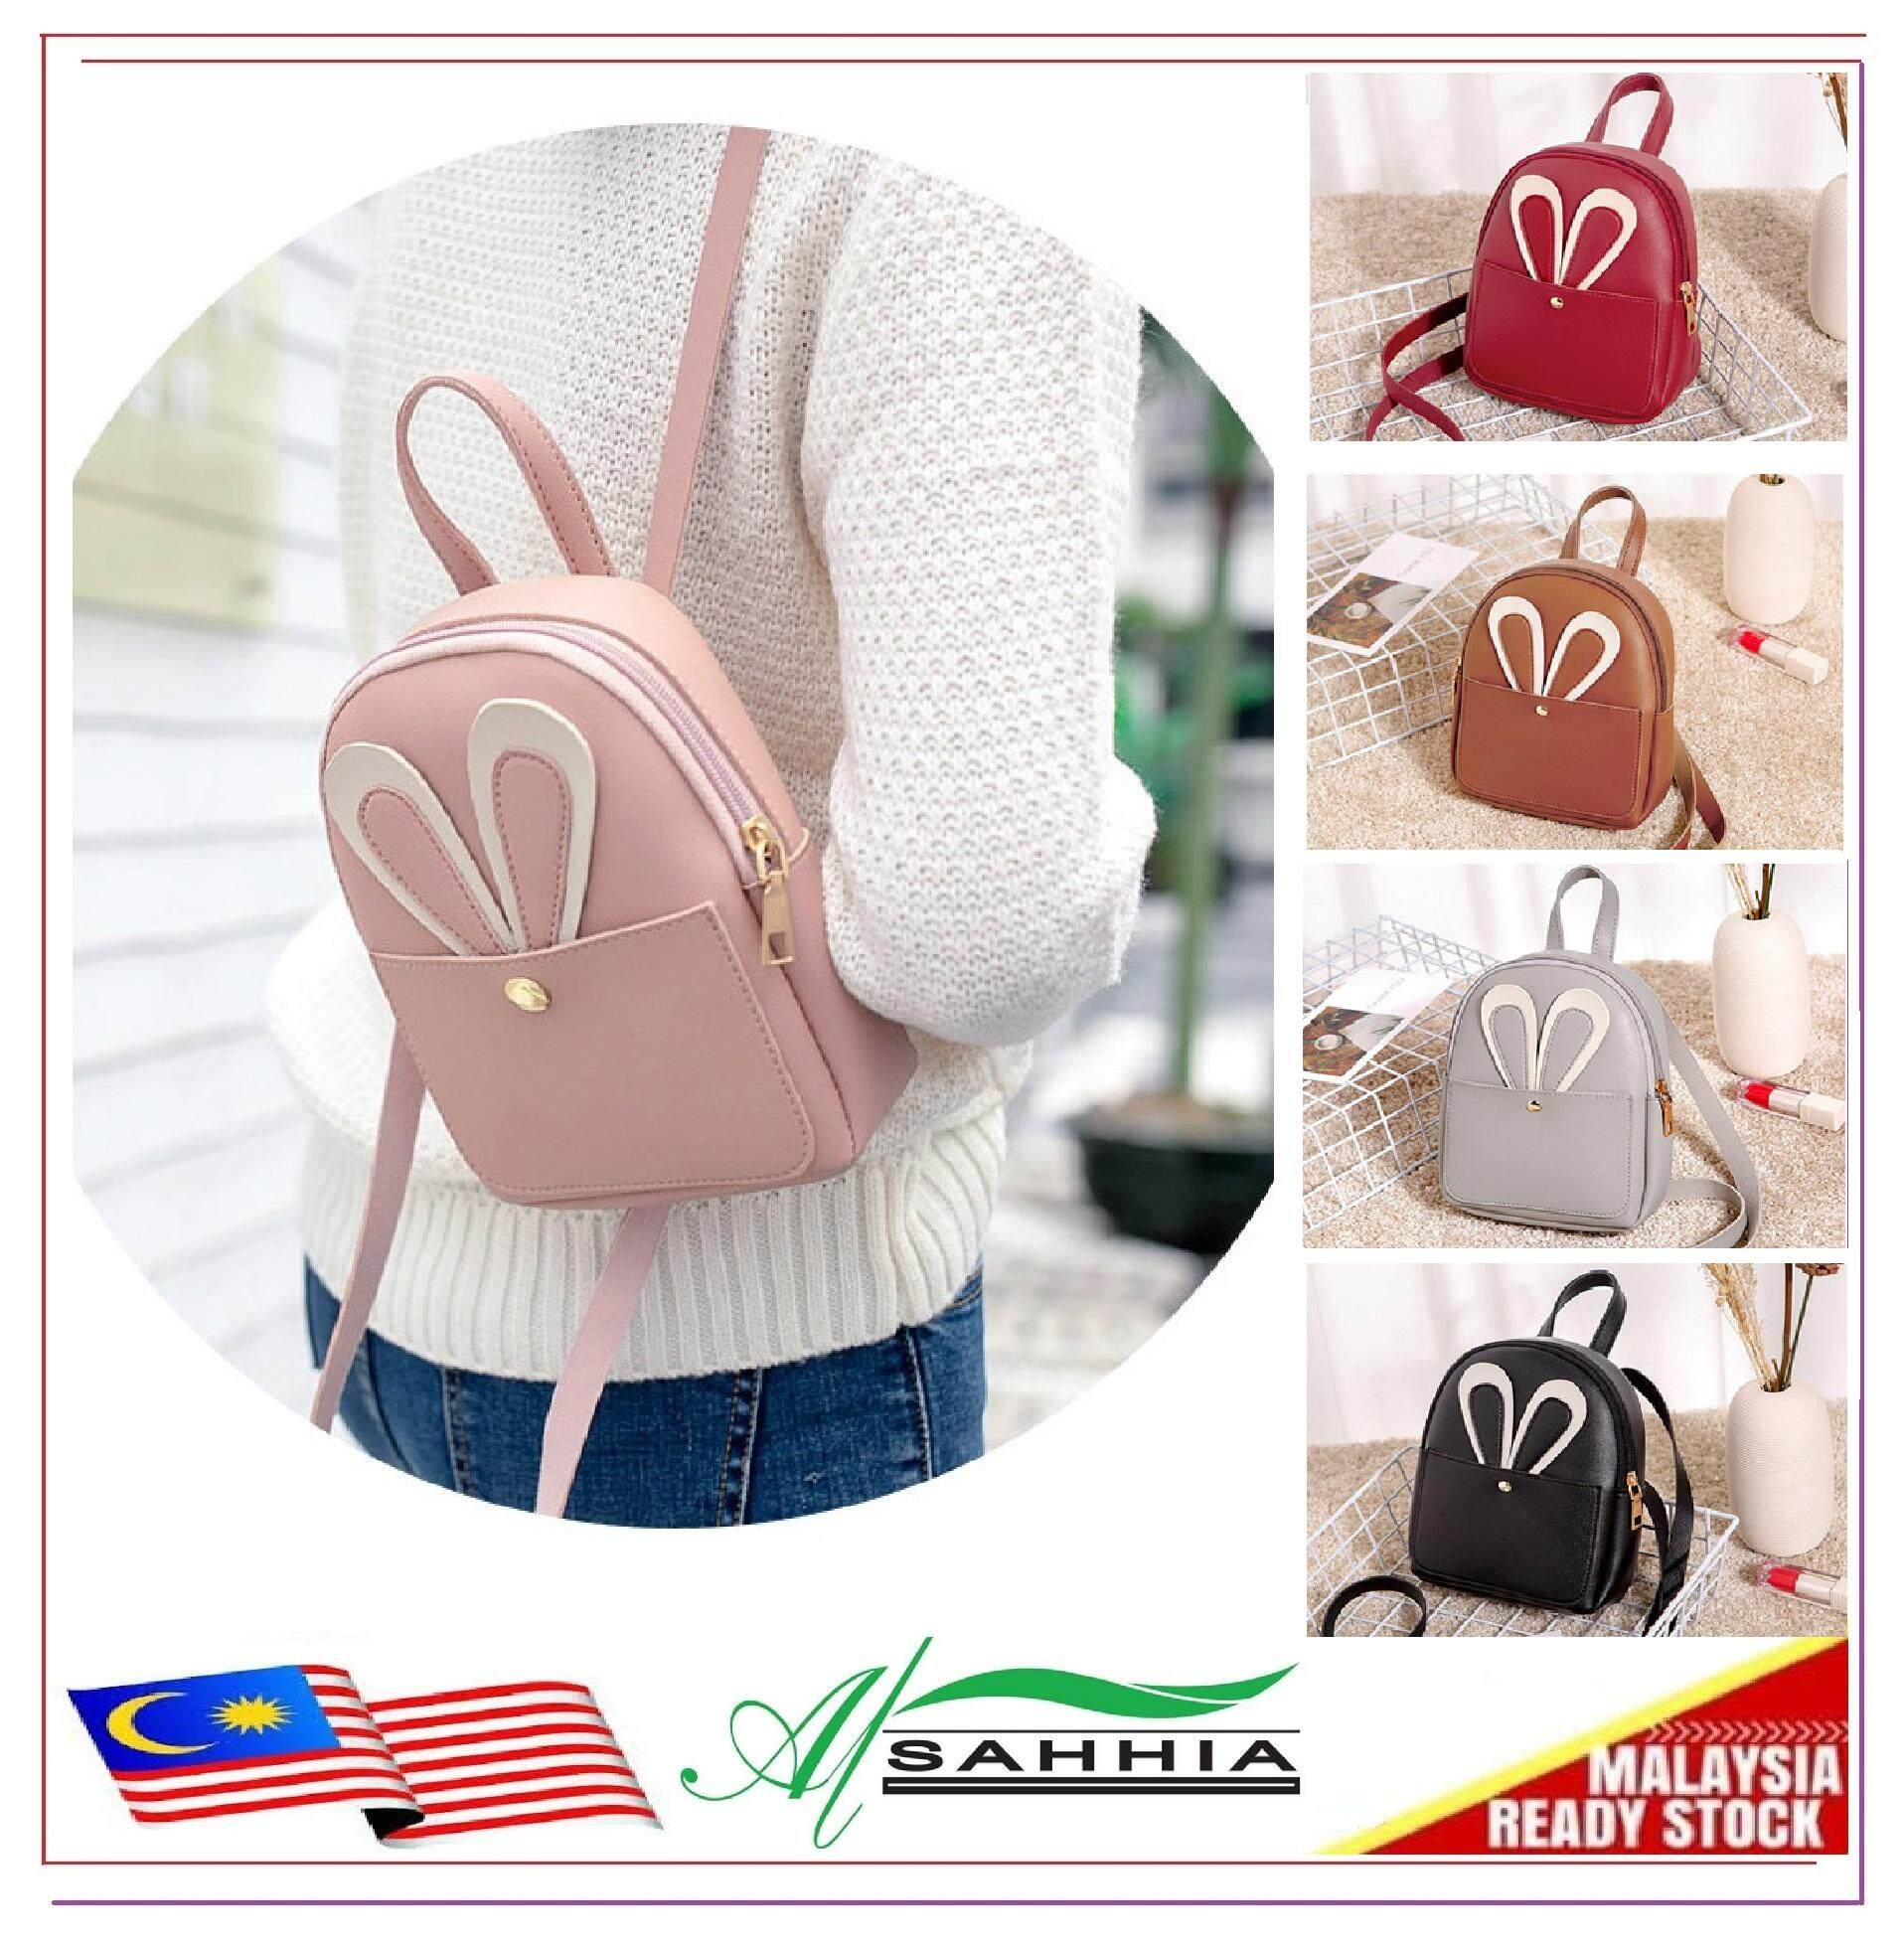 2674390ae76d4c 8G3 Al Sahhia Ready Stock Rabbit Ear Mini Backpack Beg PU Bag Casual Bag